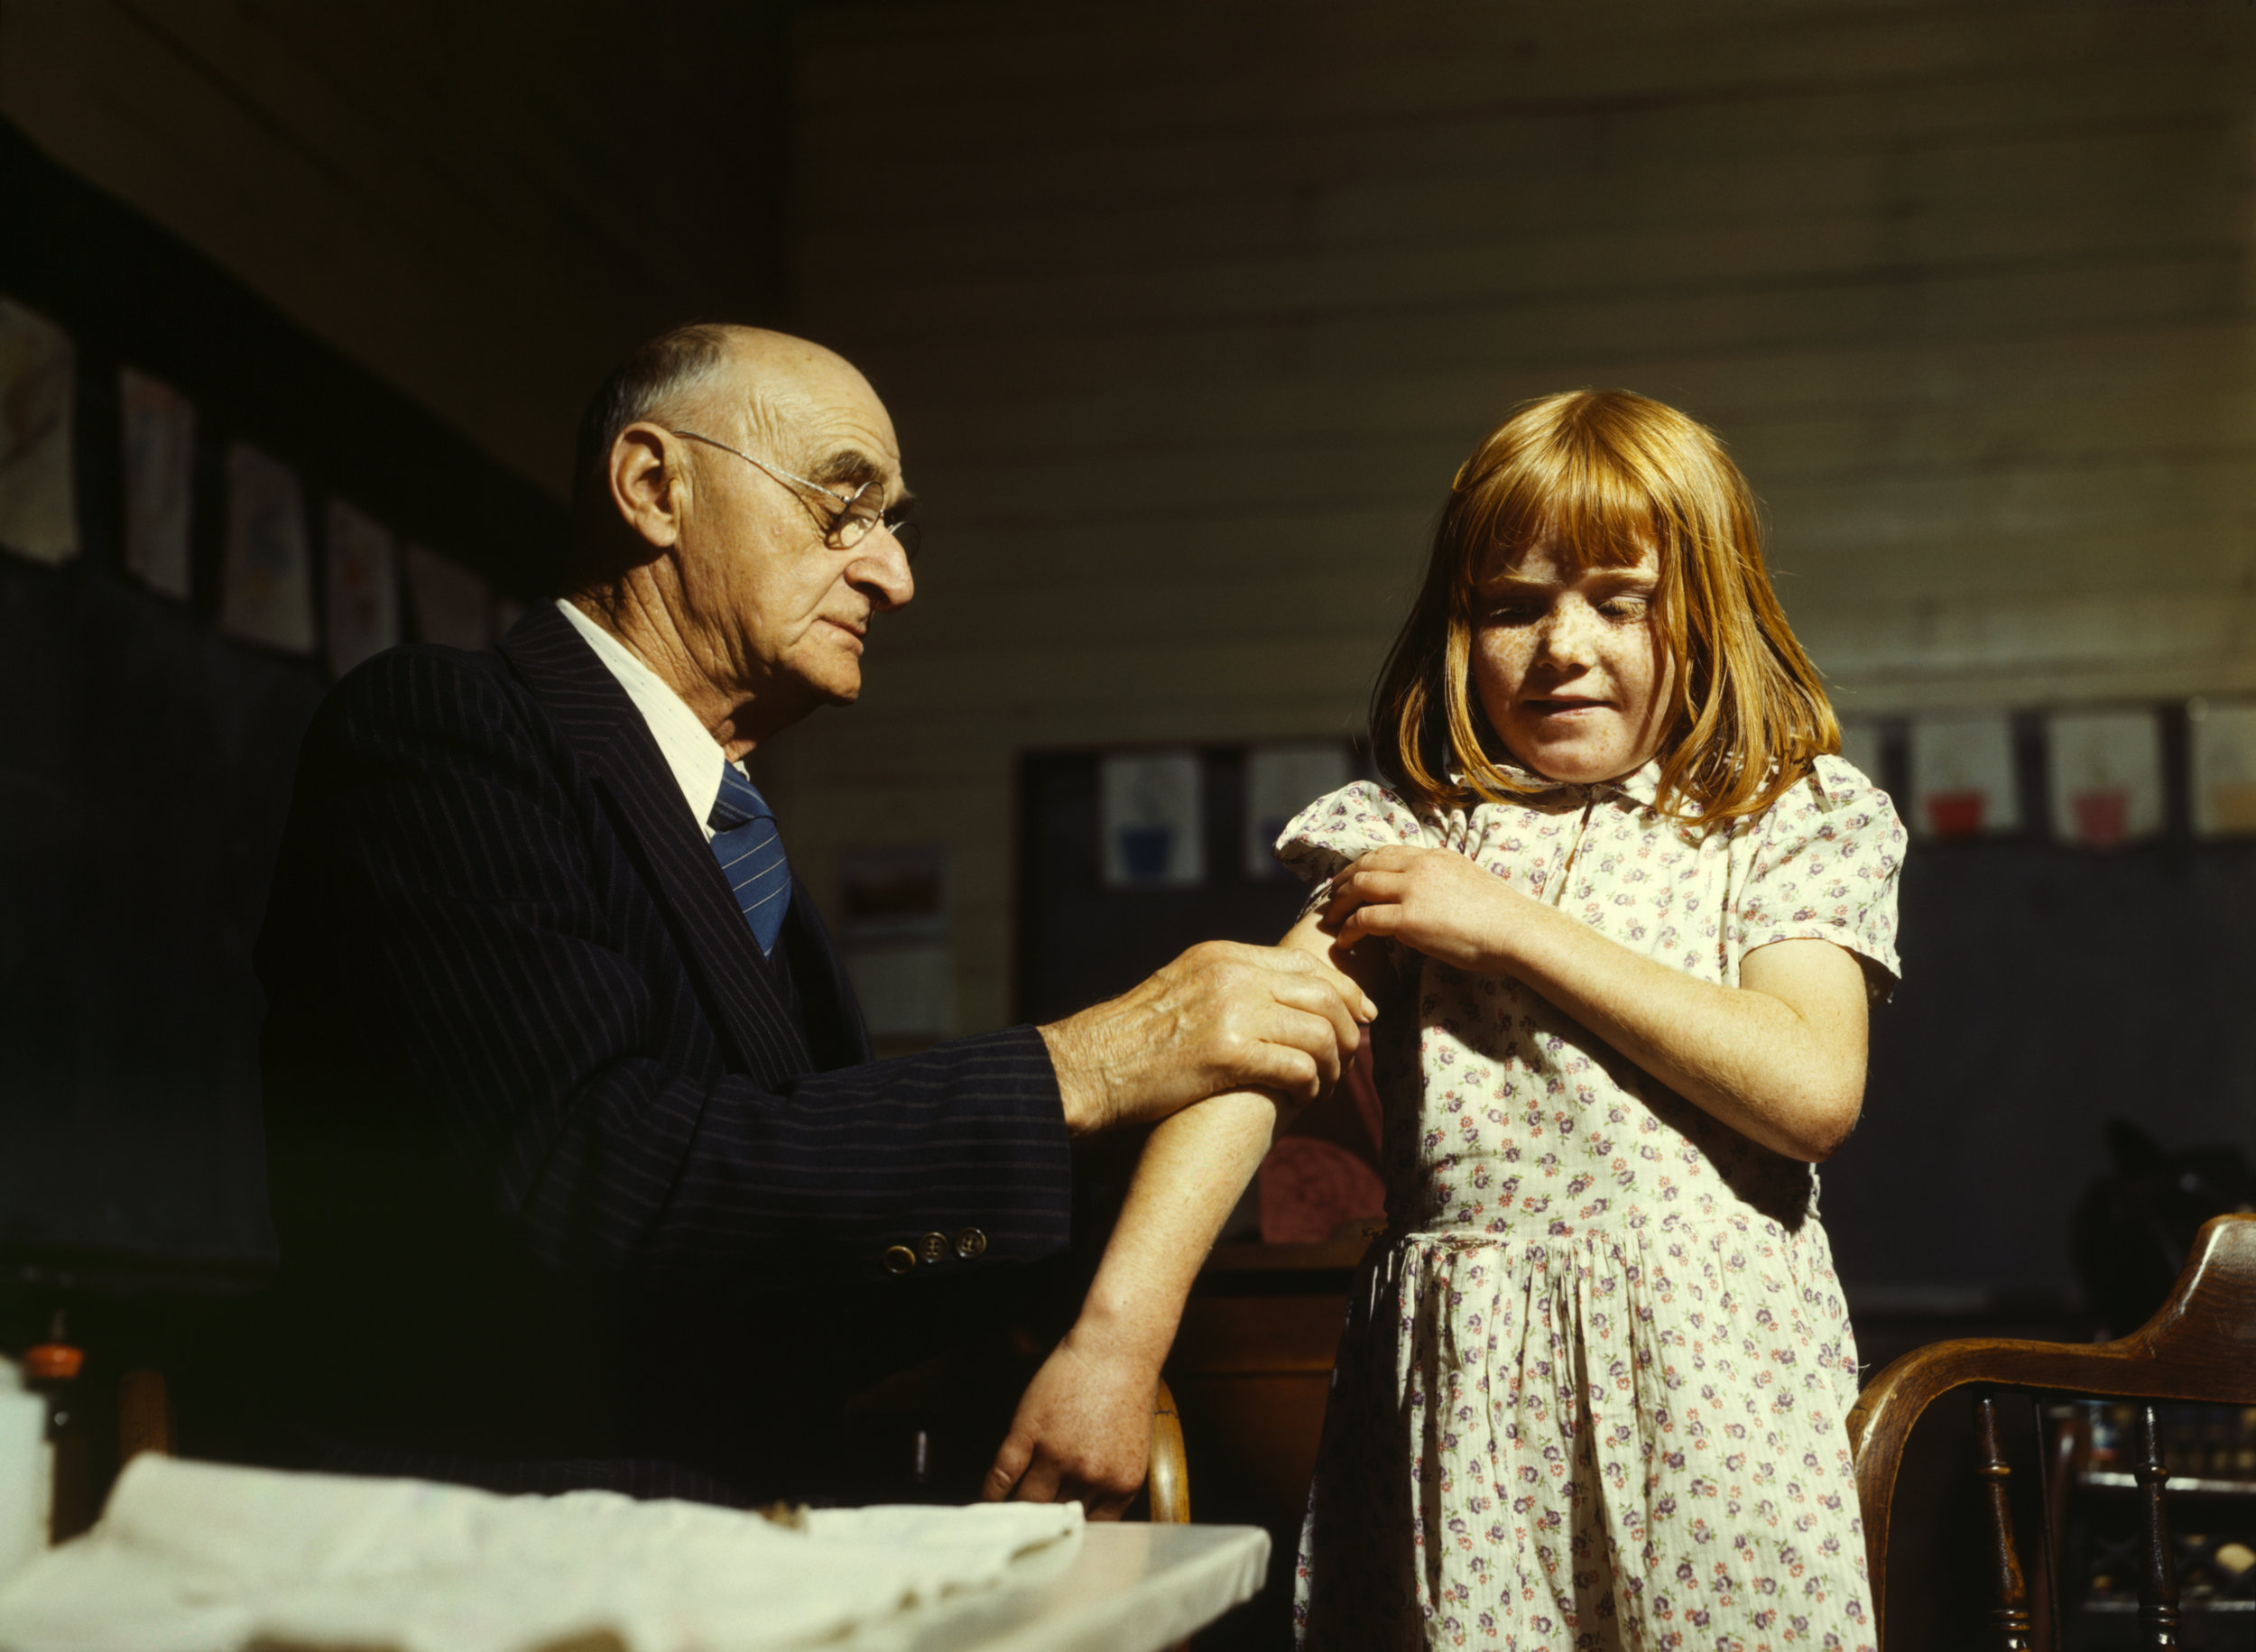 A child receives a typhoid vaccination https://upload.wikimedia.org/wikipedia/commons/b/be/Typhoid_inoculation2.jpg